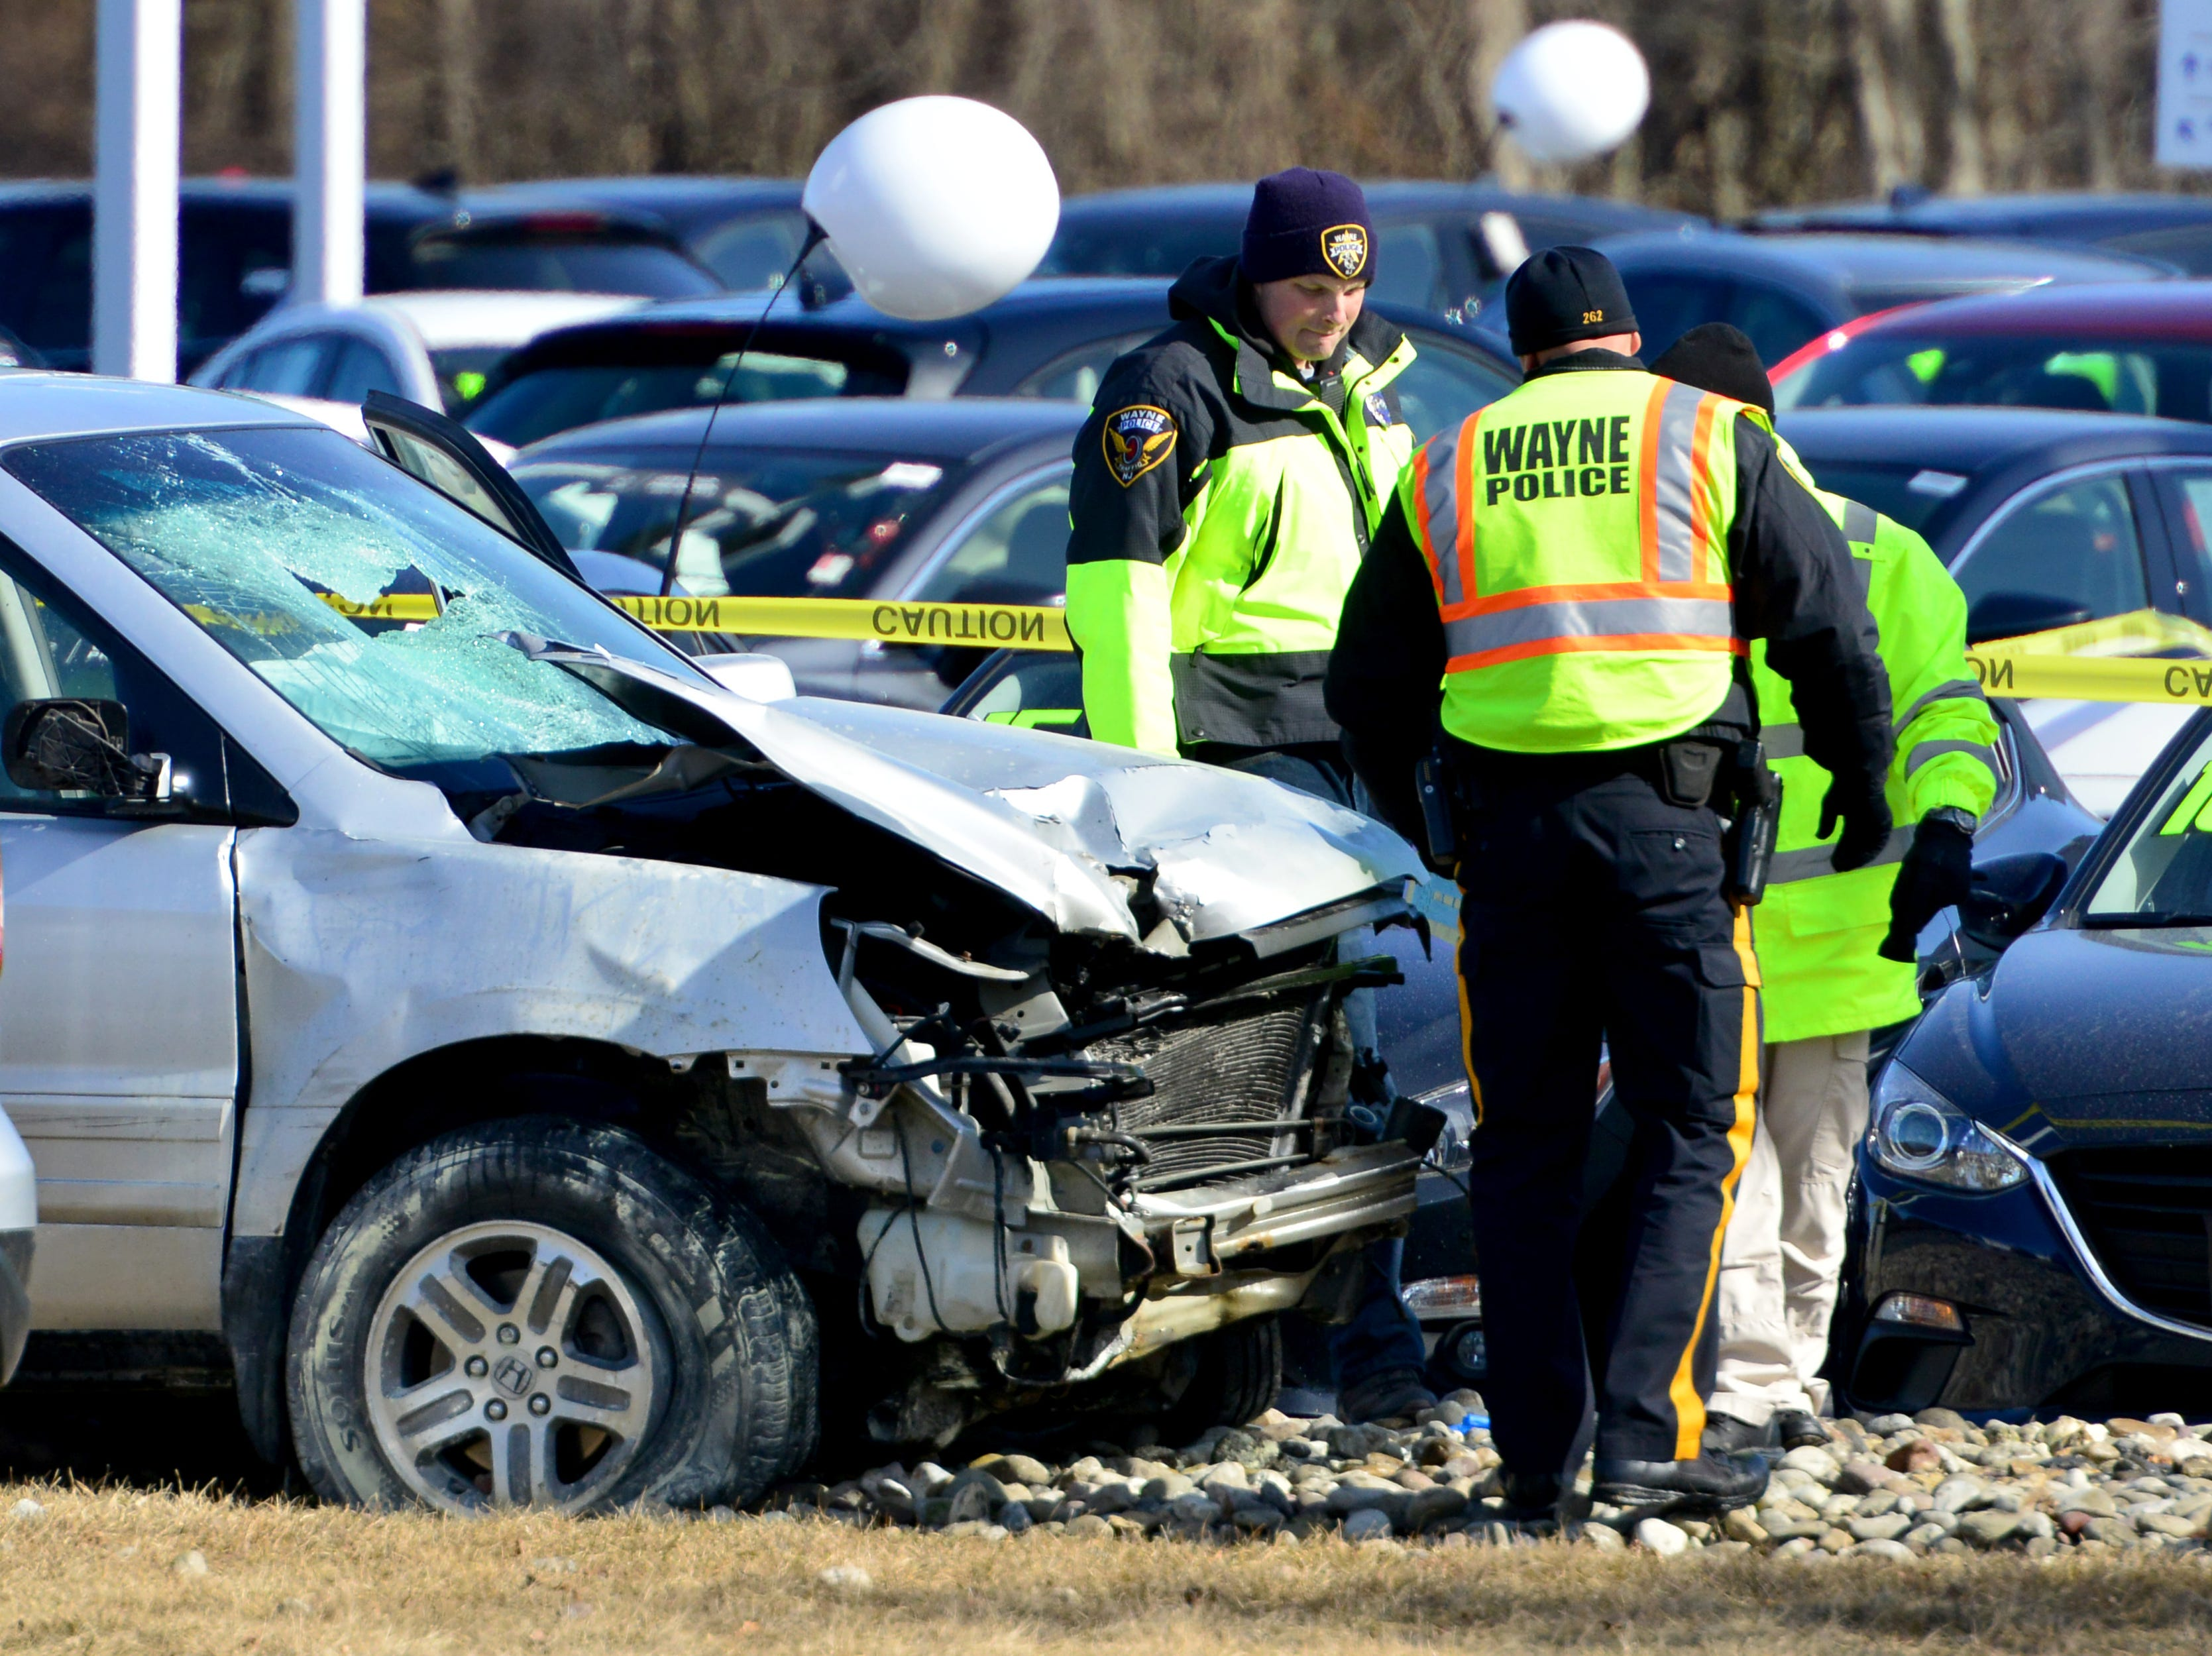 Emergency personnel surround the scene of a serious accident at a gas station on Route 23 northbound in Wayne on Tuesday February 19, 2019.